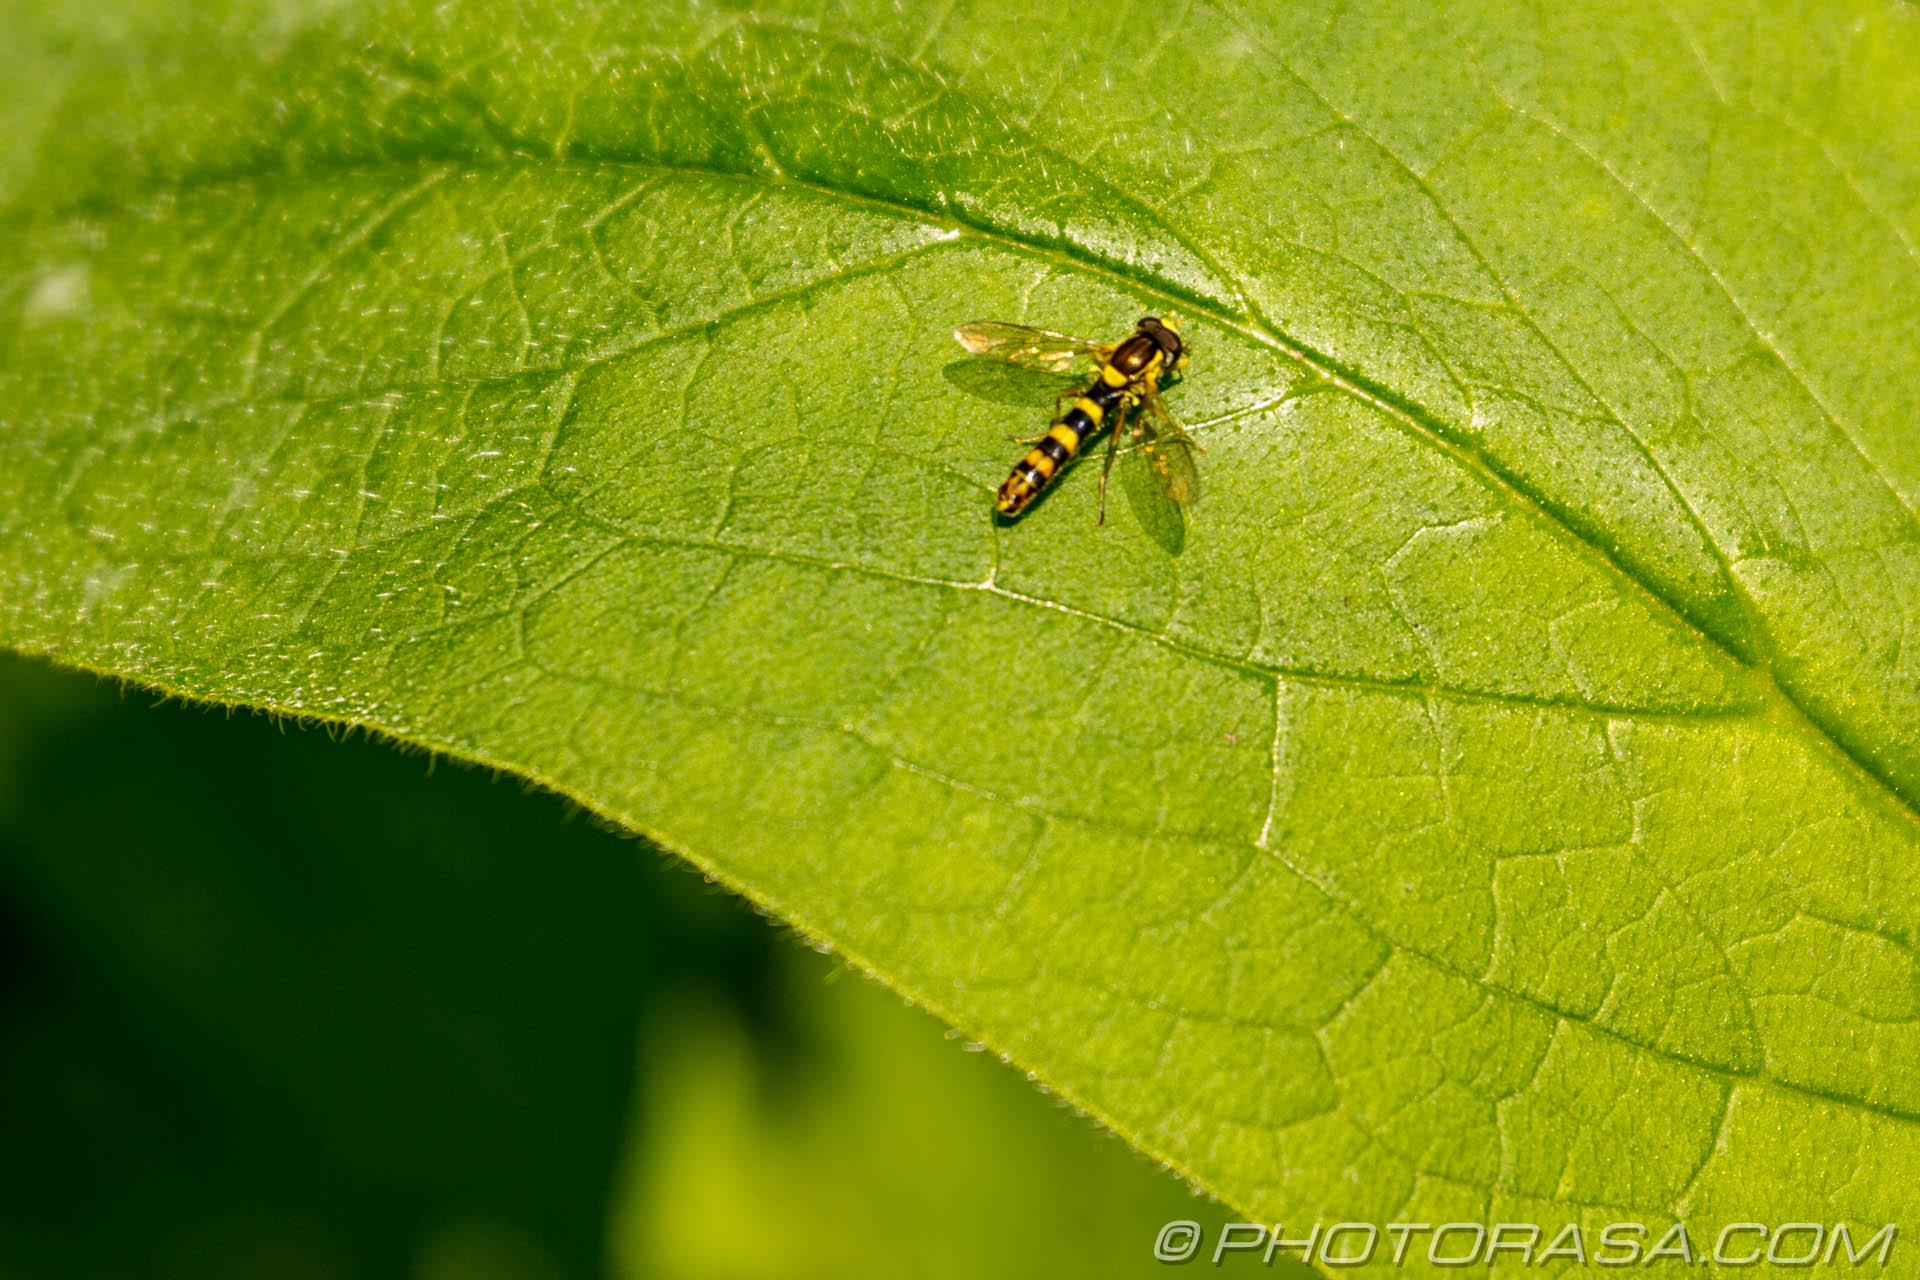 http://photorasa.com/hoverflies/hoverfly-on-leaf/